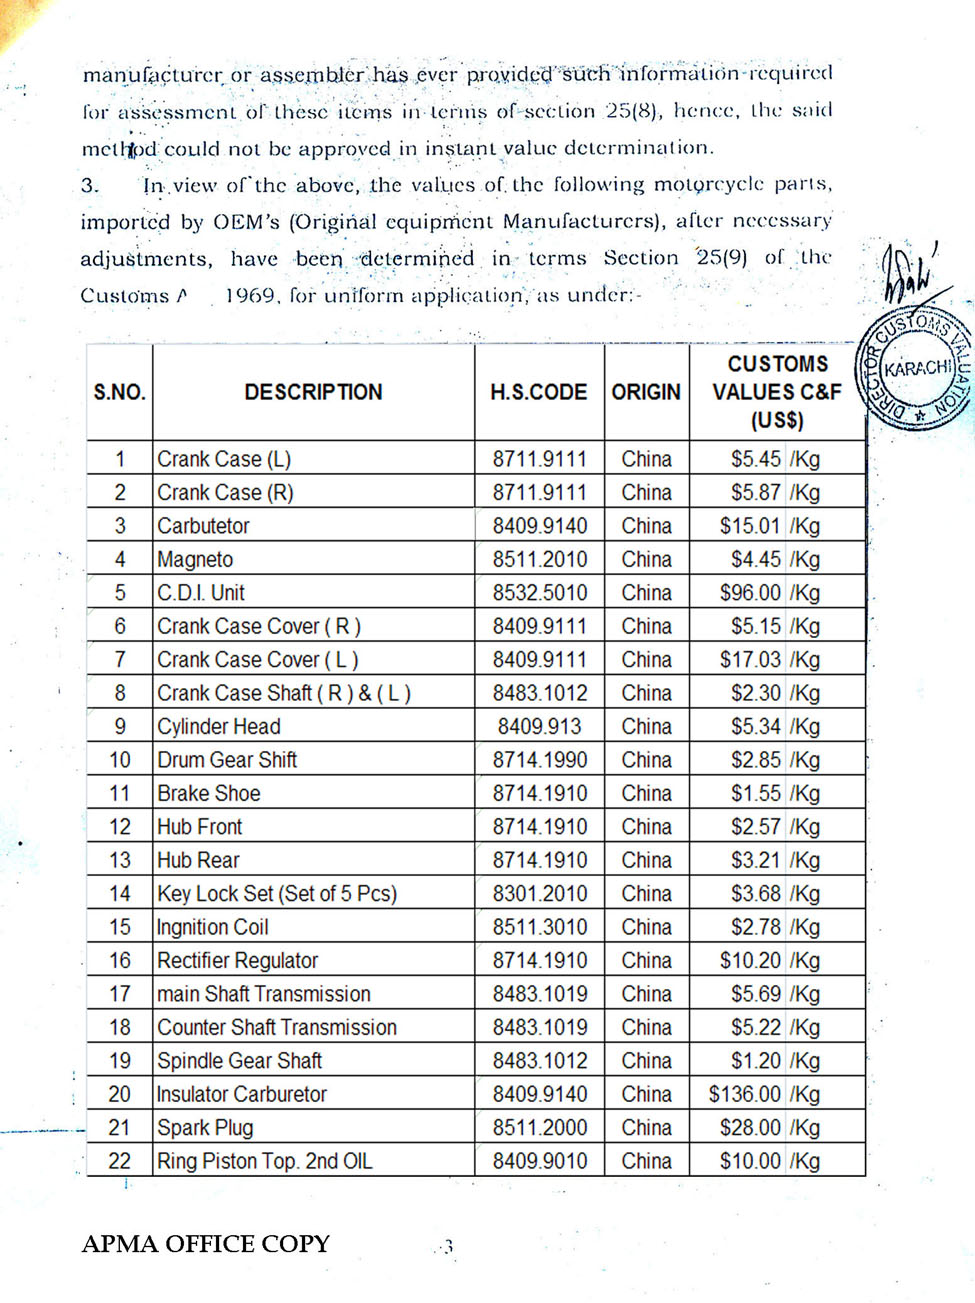 Determination Of Customs Value Of Parts Of 70cc Motorcycle Of